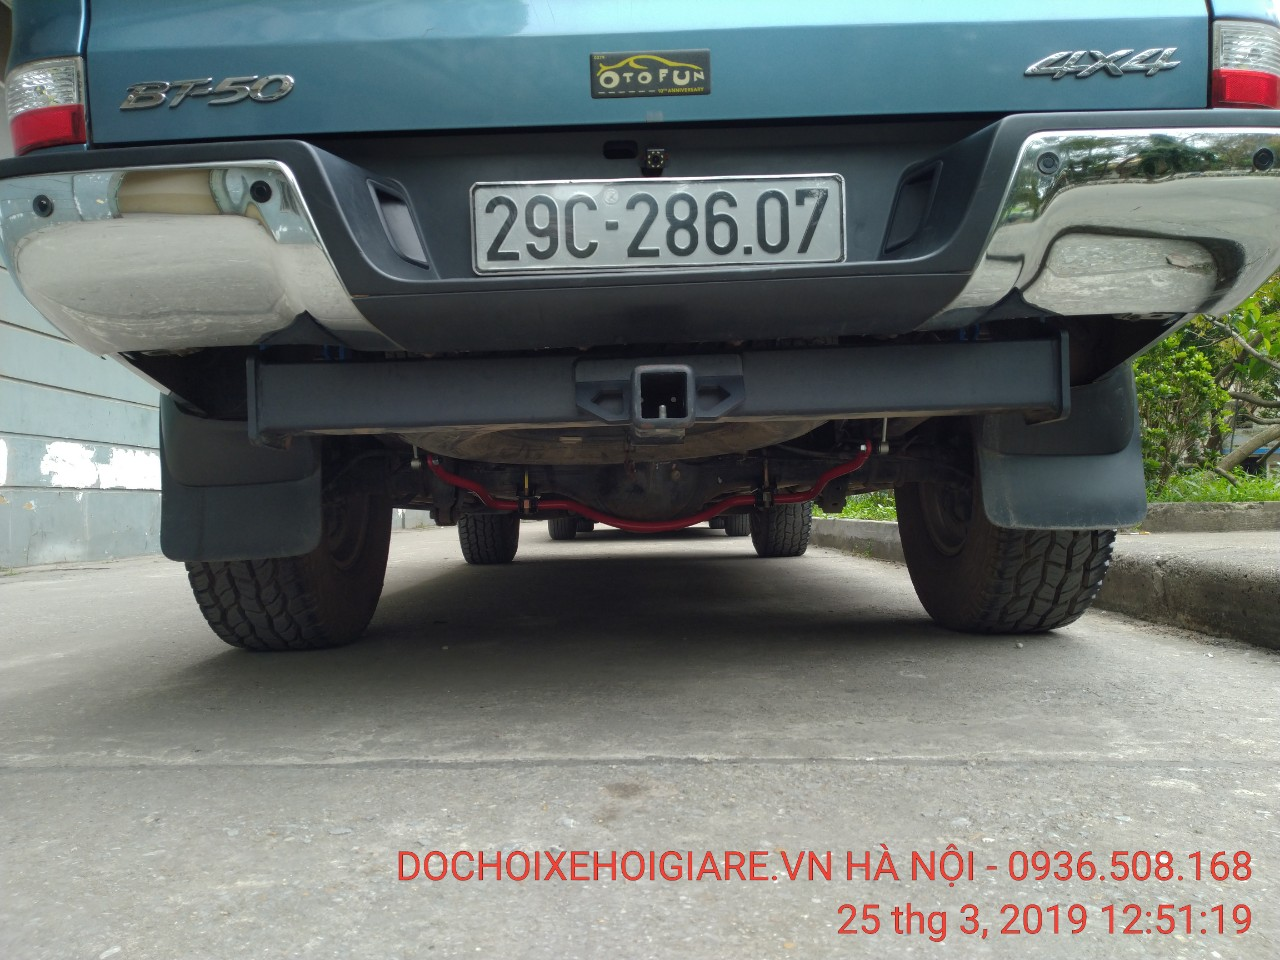 //cdn.nhanh.vn/cdn/store/10750/psCT/20190327/12630484/Thanh_can_bang_o_to_Mazda_BT50_Ford_Ranger_zin_theo_xe_OEM_(thanh_can_bang_o_to_mazda_bt50_ford_ranger_zin_theo_xe_oem_(4)).jpg